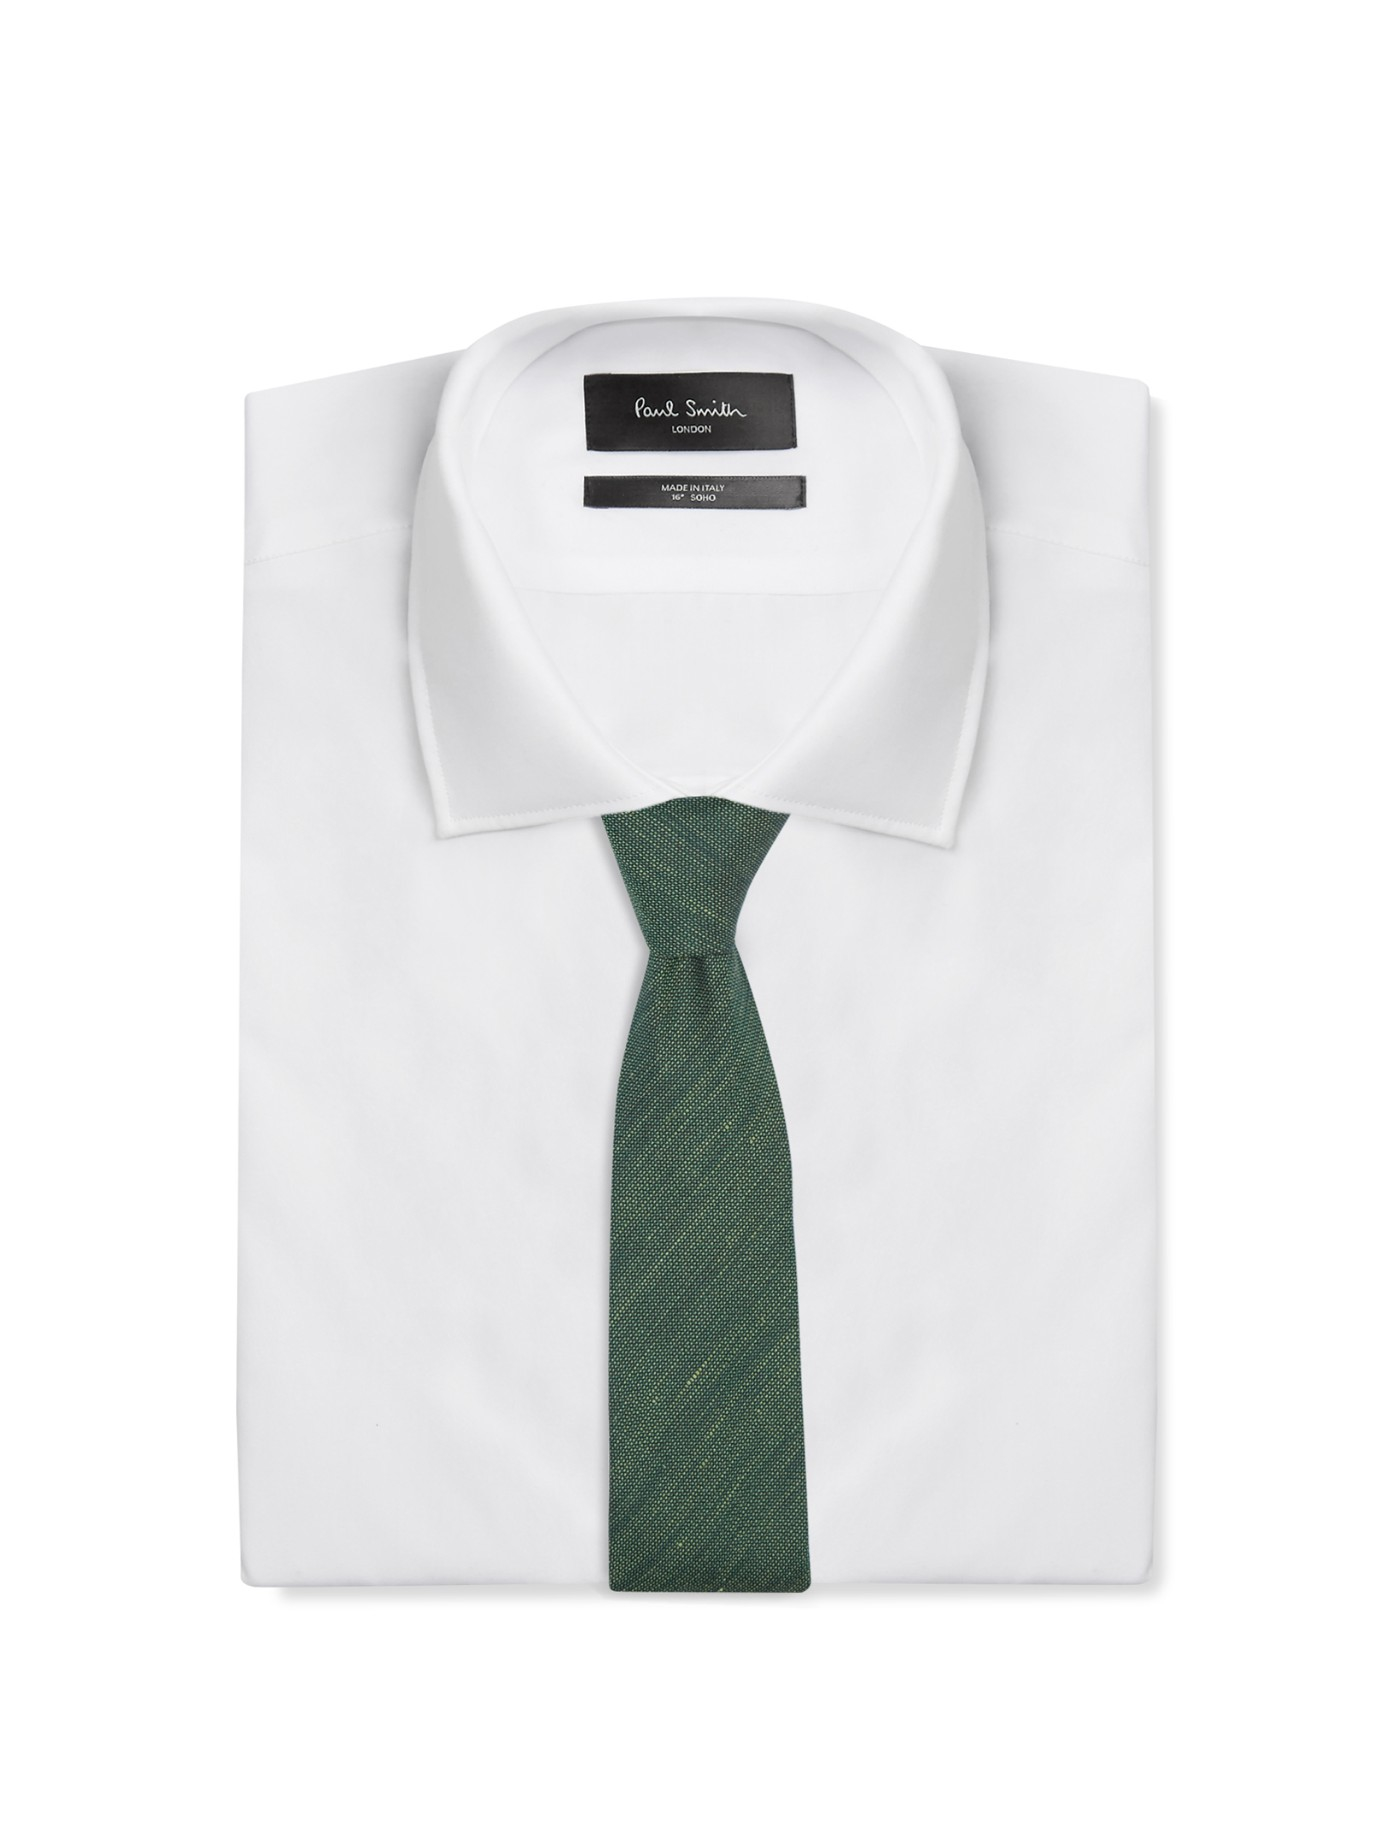 d2344ad676e2 ... norway lyst burberry prorsum silk and linen blend tie in green for men  f2ac5 2d506